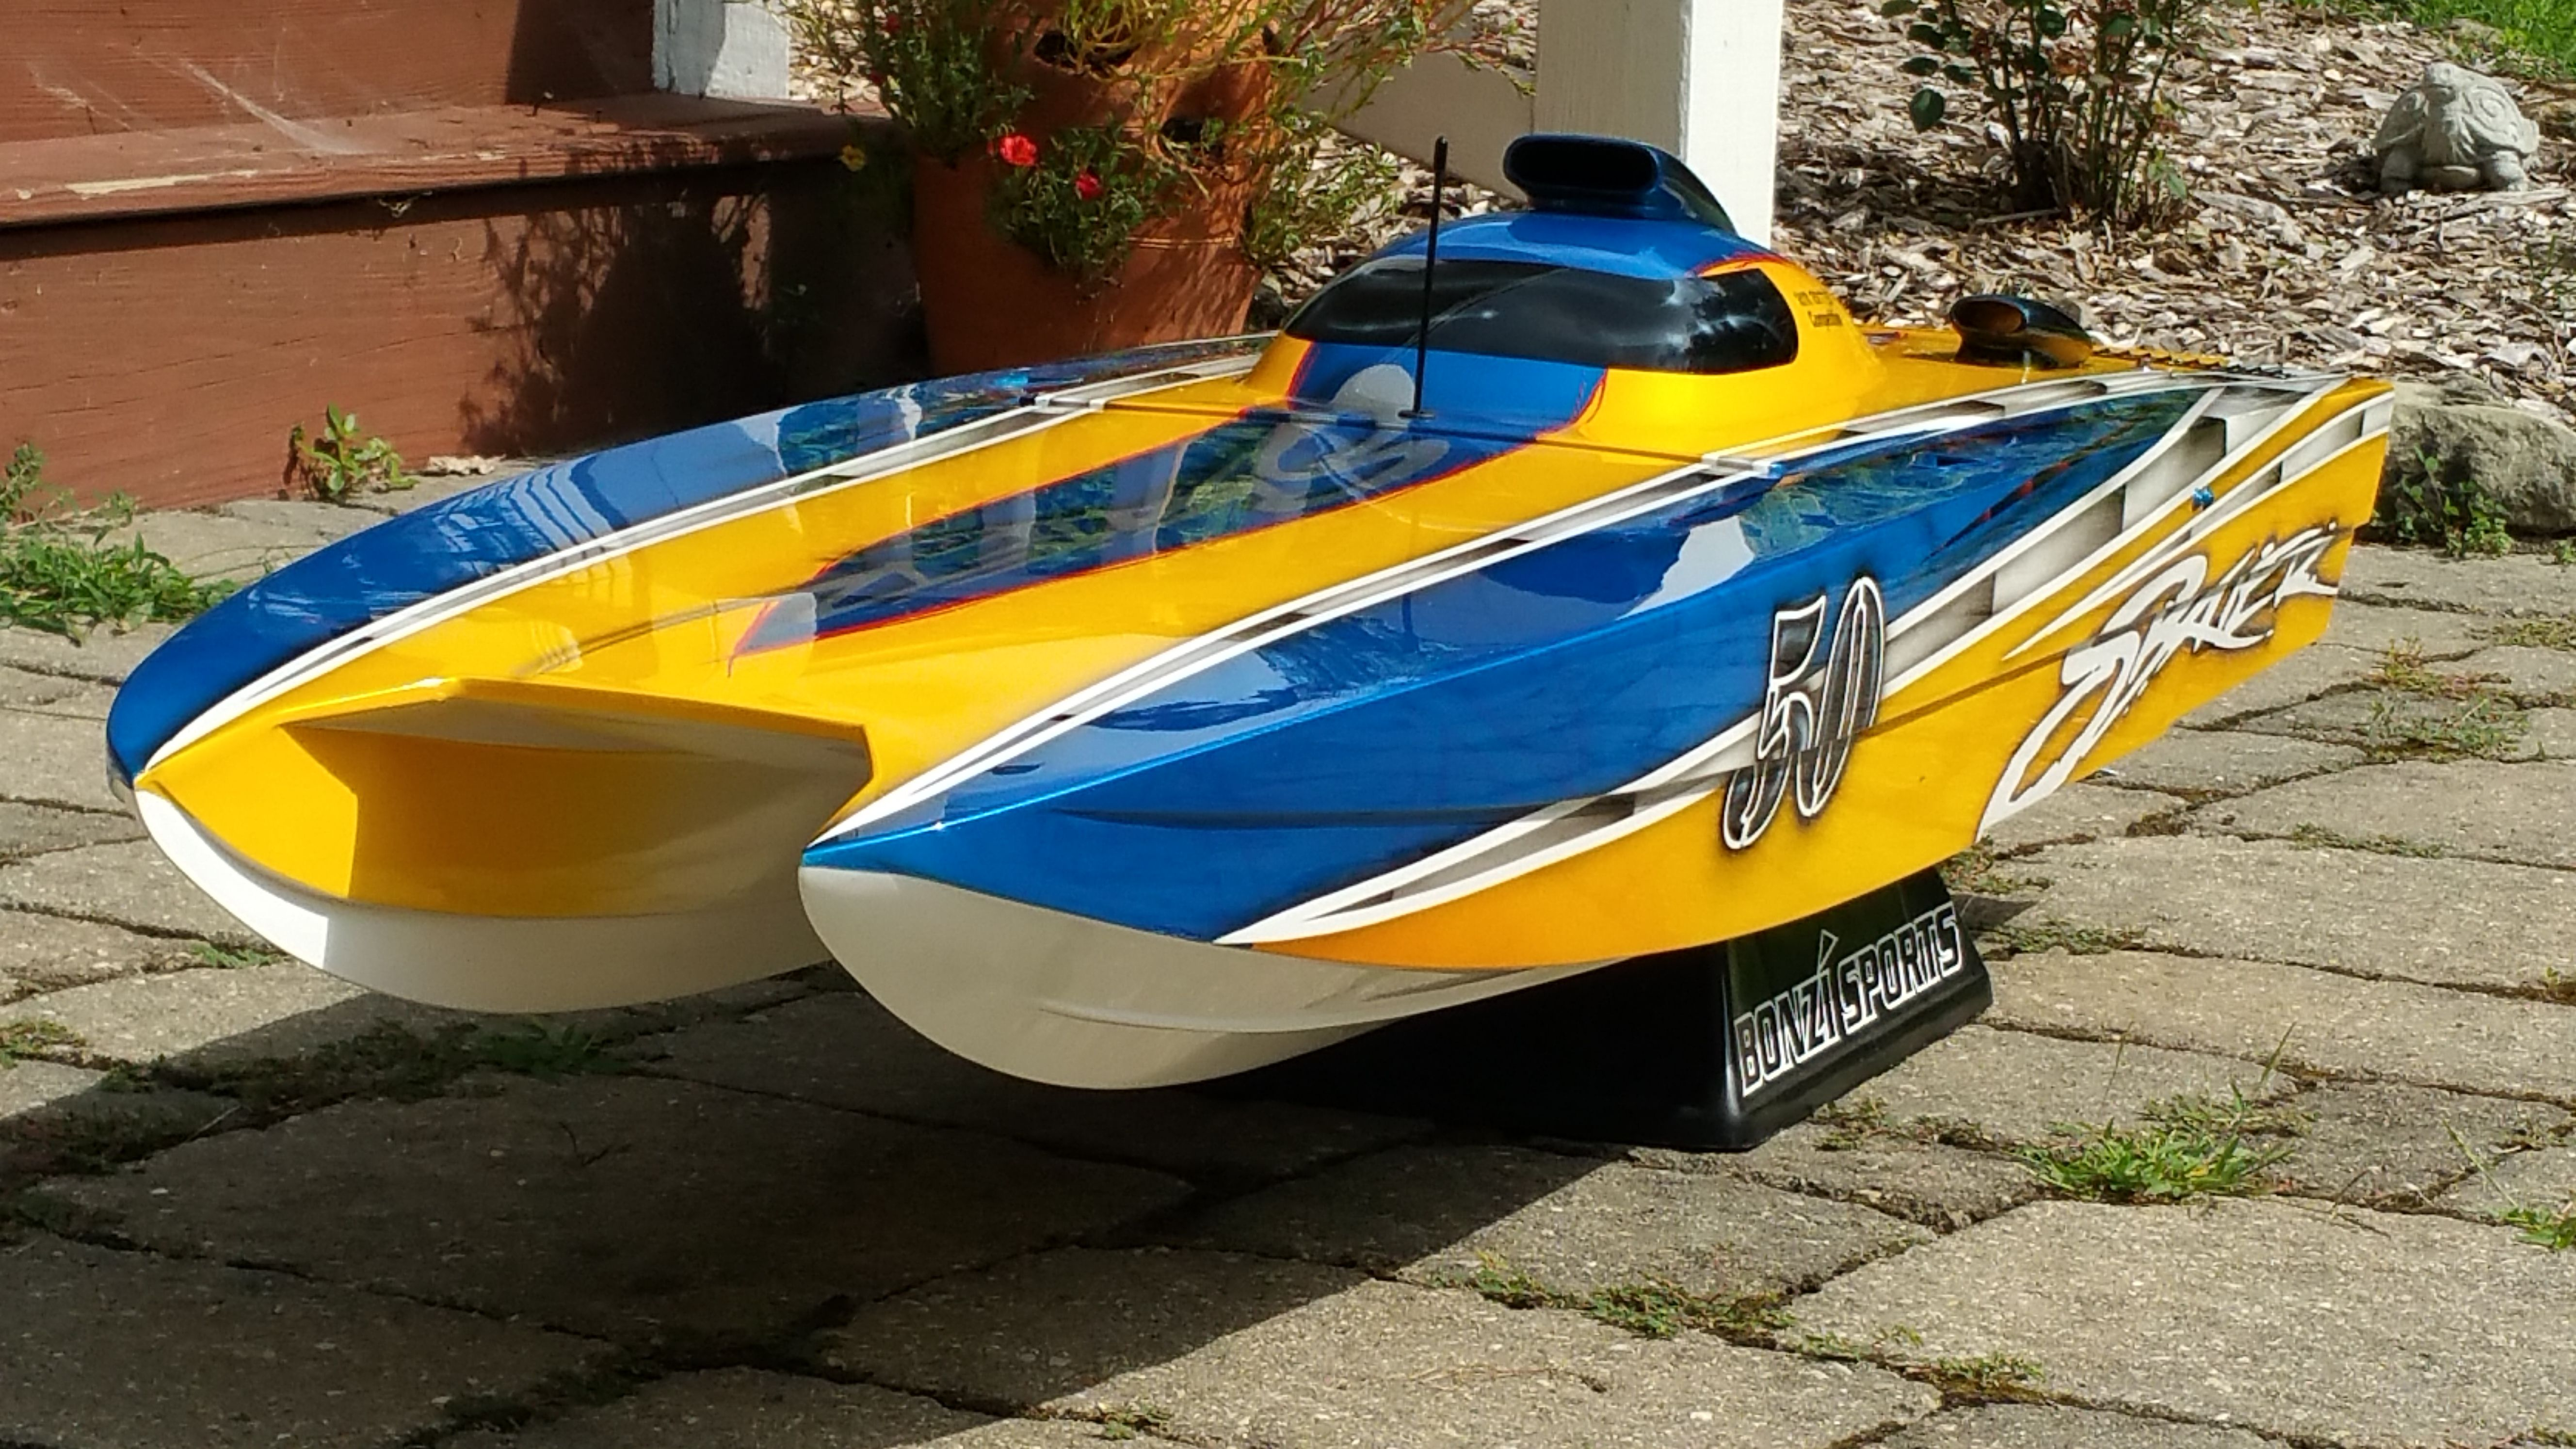 Pin by Norseman72 on RC Boats & Trucks | Gas rc boats, Wooden boat